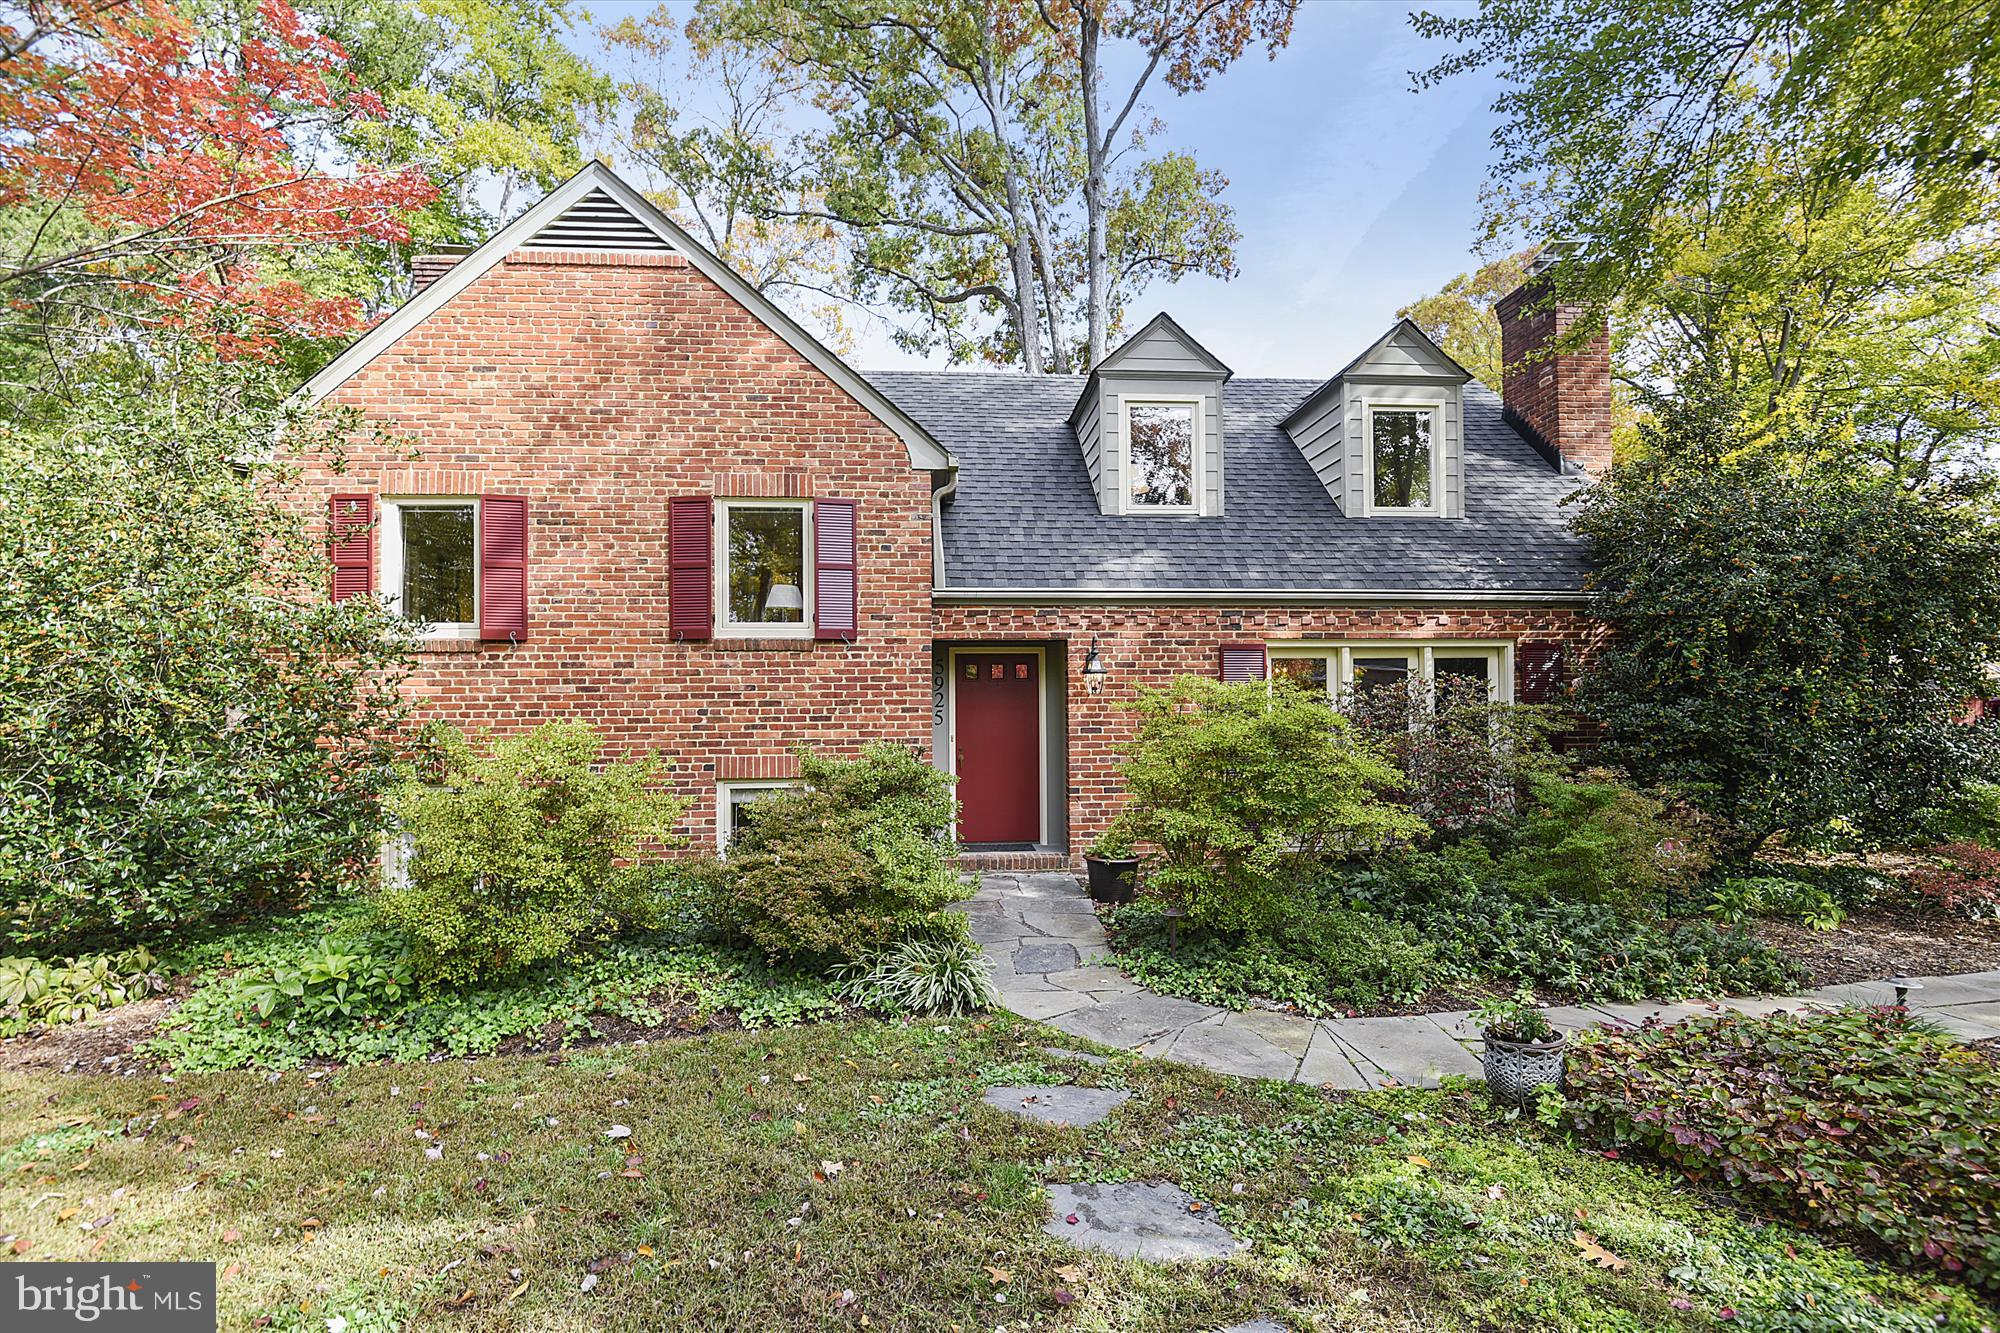 First Open11/11 from1-4 pm. Charming and unique Cape on large corner lot in coveted Wilton Woods! You will enjoy this bright sunny home with generous room sizes, hardwood floors on all living areas including bedrooms, and abundant storage. Spacious living room & dining room overlook professionally landscaped gardens, large Family Room with wood burning fireplace, lovely living room with gas fireplace, perfect for the holidays! And a chef's kitchen opens to backyard patio. Plenty of parking and lots of storage.